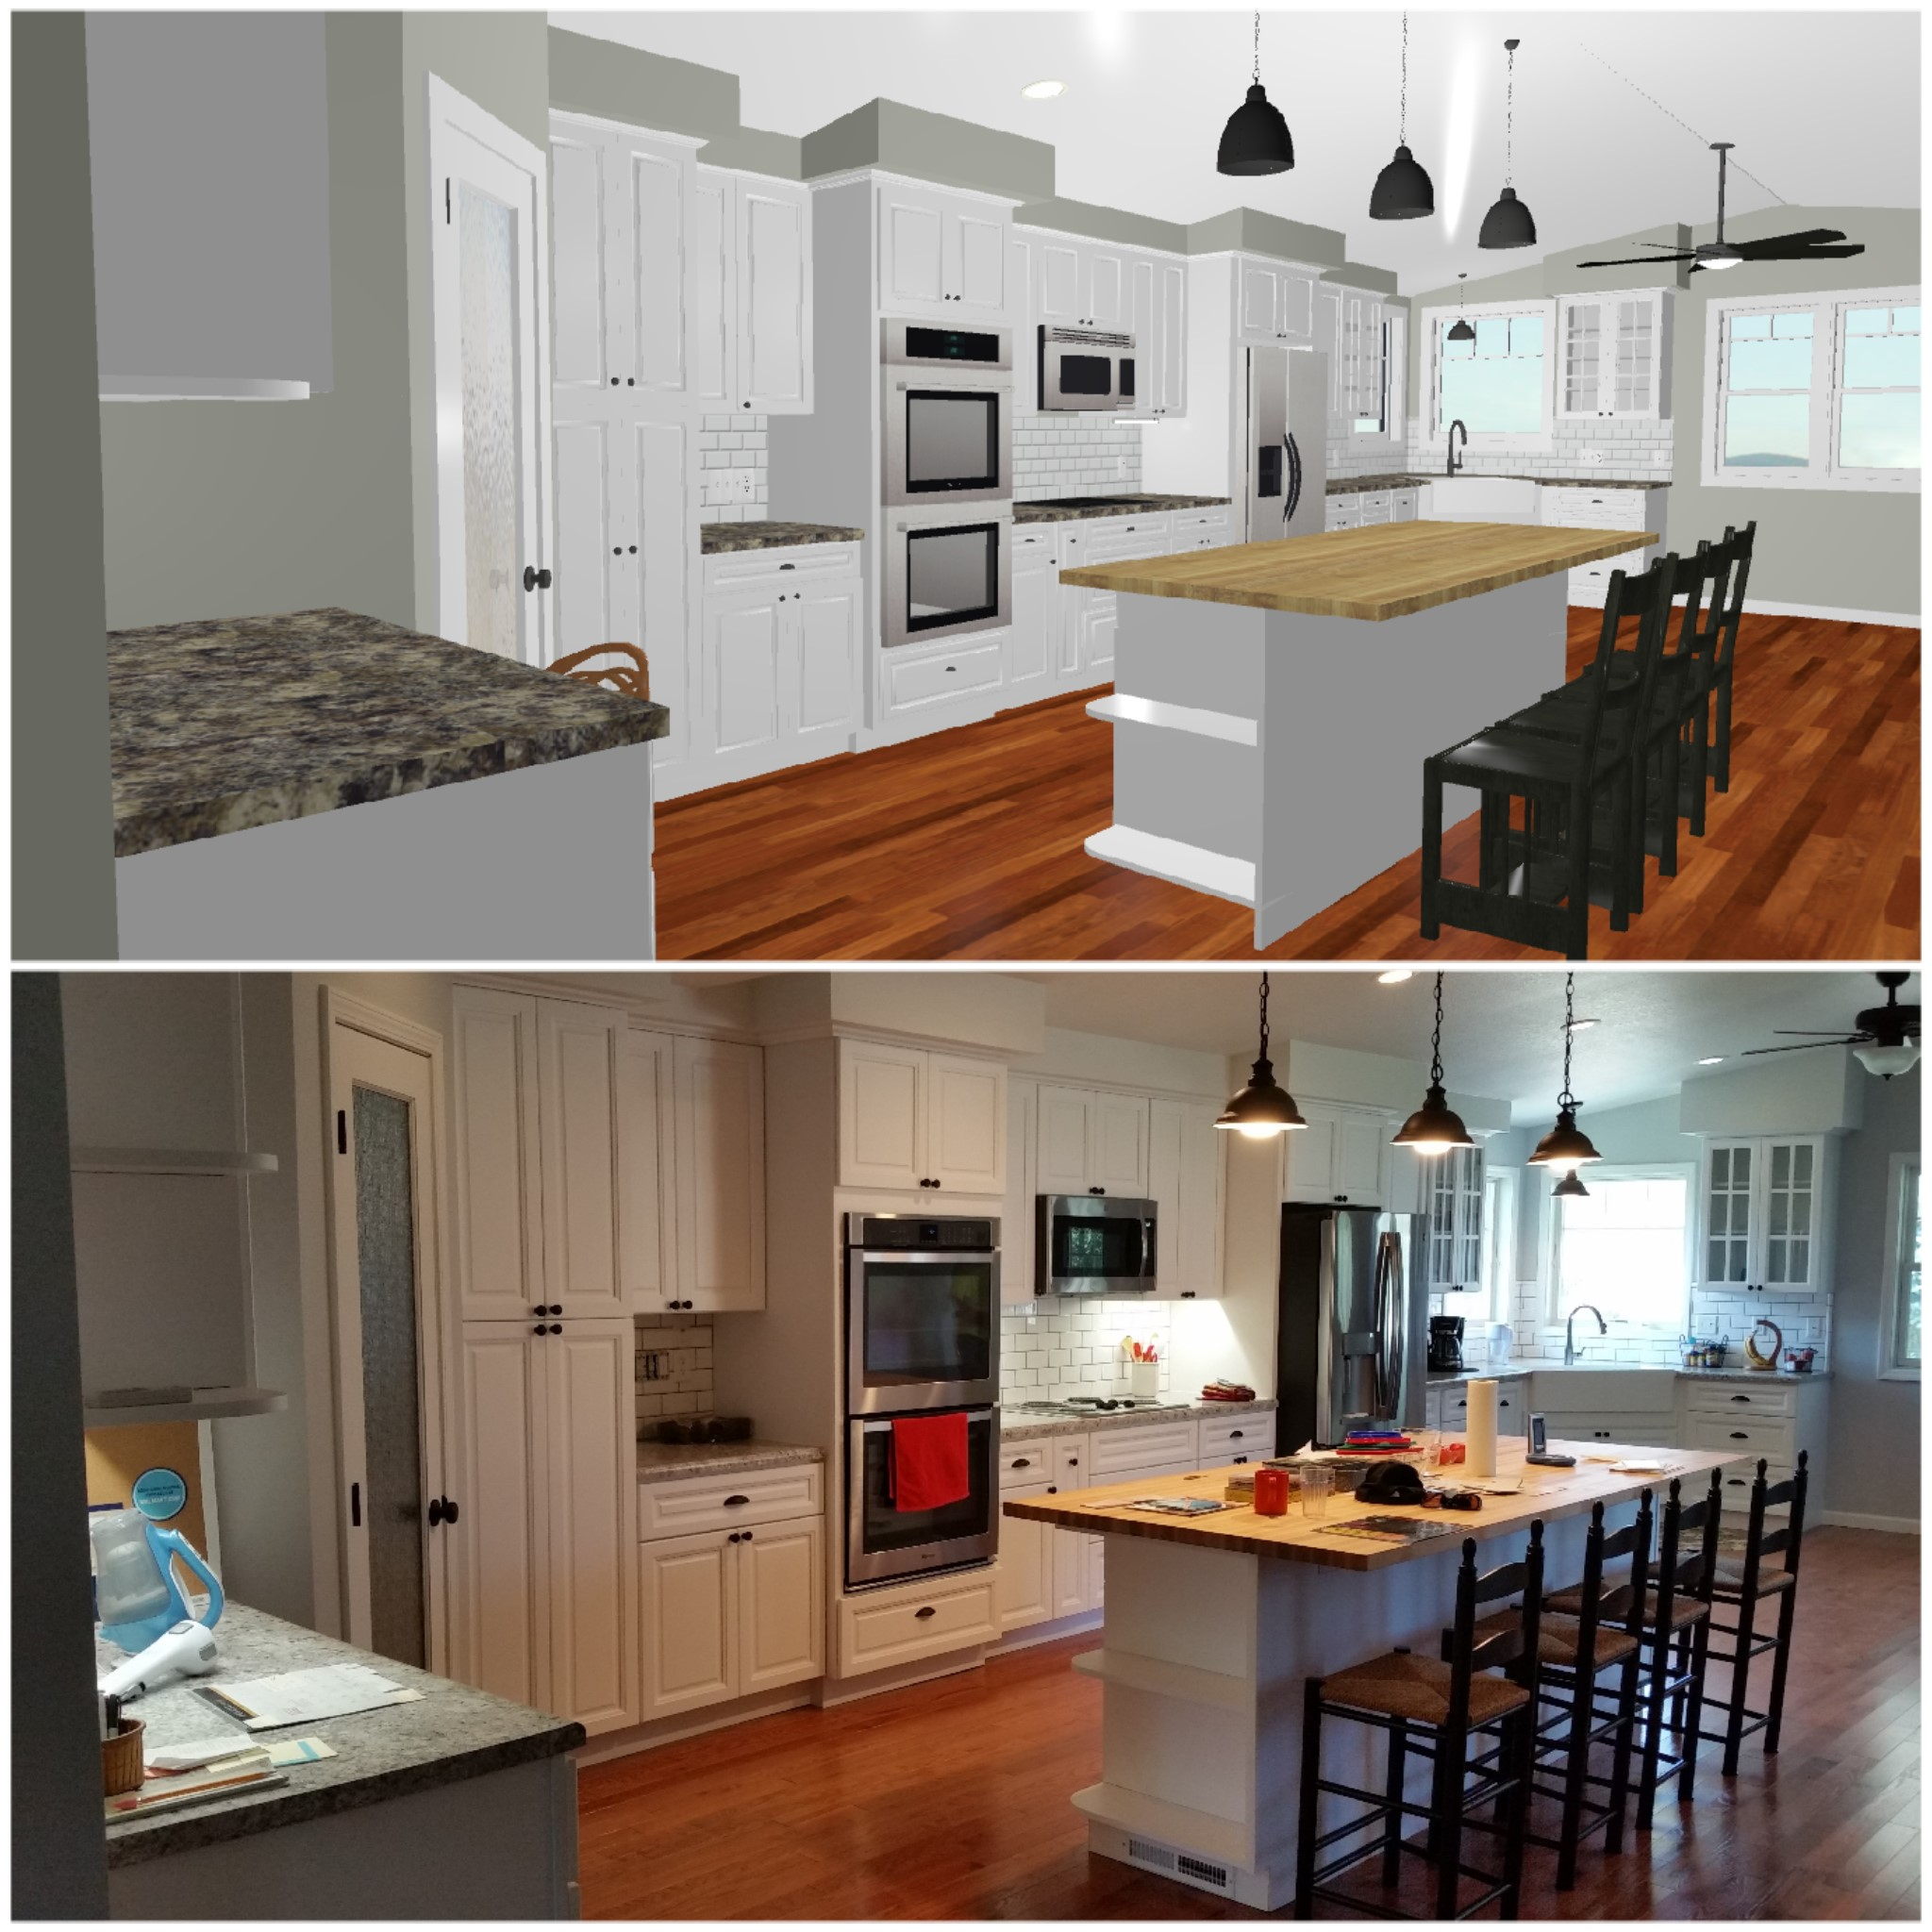 Design - We can take your vision and create the kitchen you always dreamed of. With 3D images and layouts your vision of your kitchen will come alive. We work closely with you from beginning to end and make sure your project runs smooth and timely.